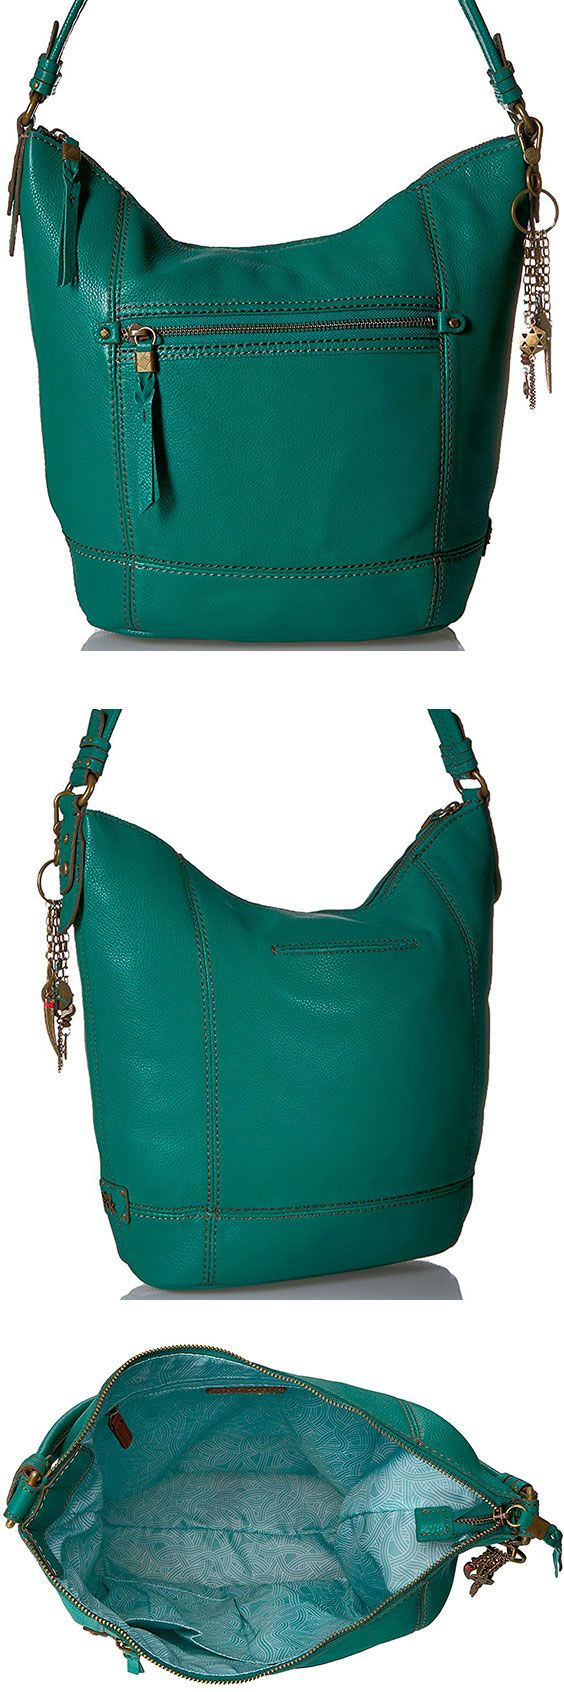 The Sak Sequoia Hobo Bag – Best Large Leather Hobo Shoulder Bag The Sequoia lives up to its namesake and comes in at a relatively large, inexpensive shoulder bag. With 11 styles to choose from, the right person will love the oversized design. #TheSAK #Leather #Baguette #Handbag #Hobo #ShoulderBag #Bag #Green